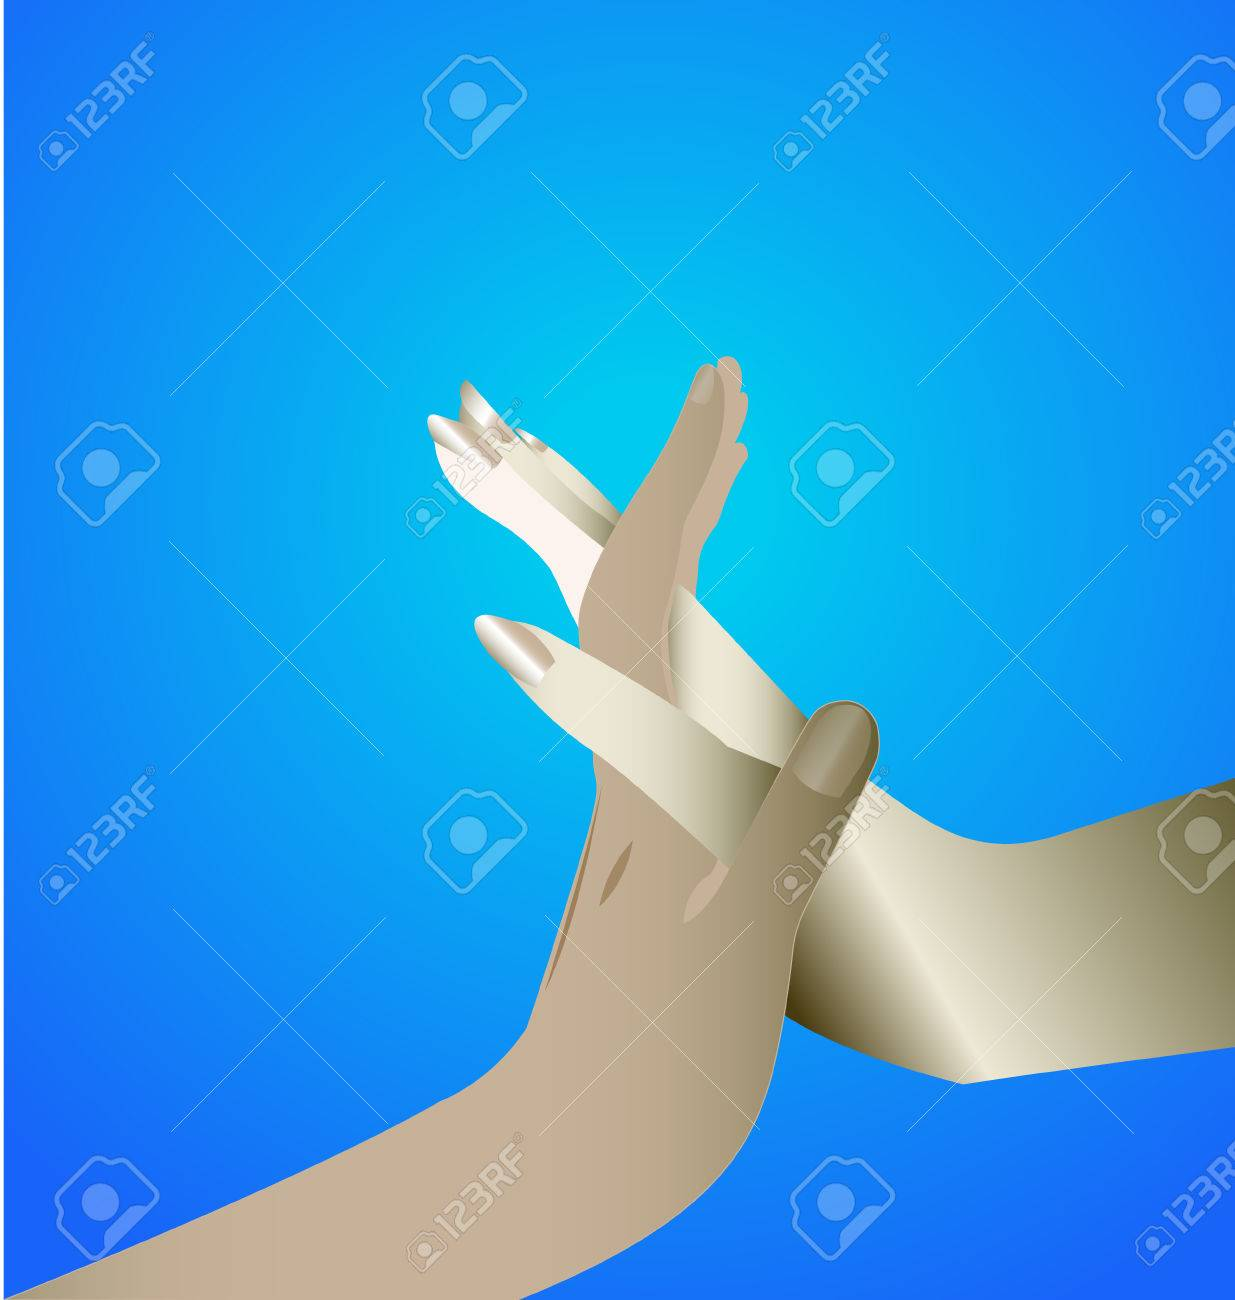 Hands Unity Symbol Icon Royalty Free Cliparts Vectors And Stock Illustration Image 29760508